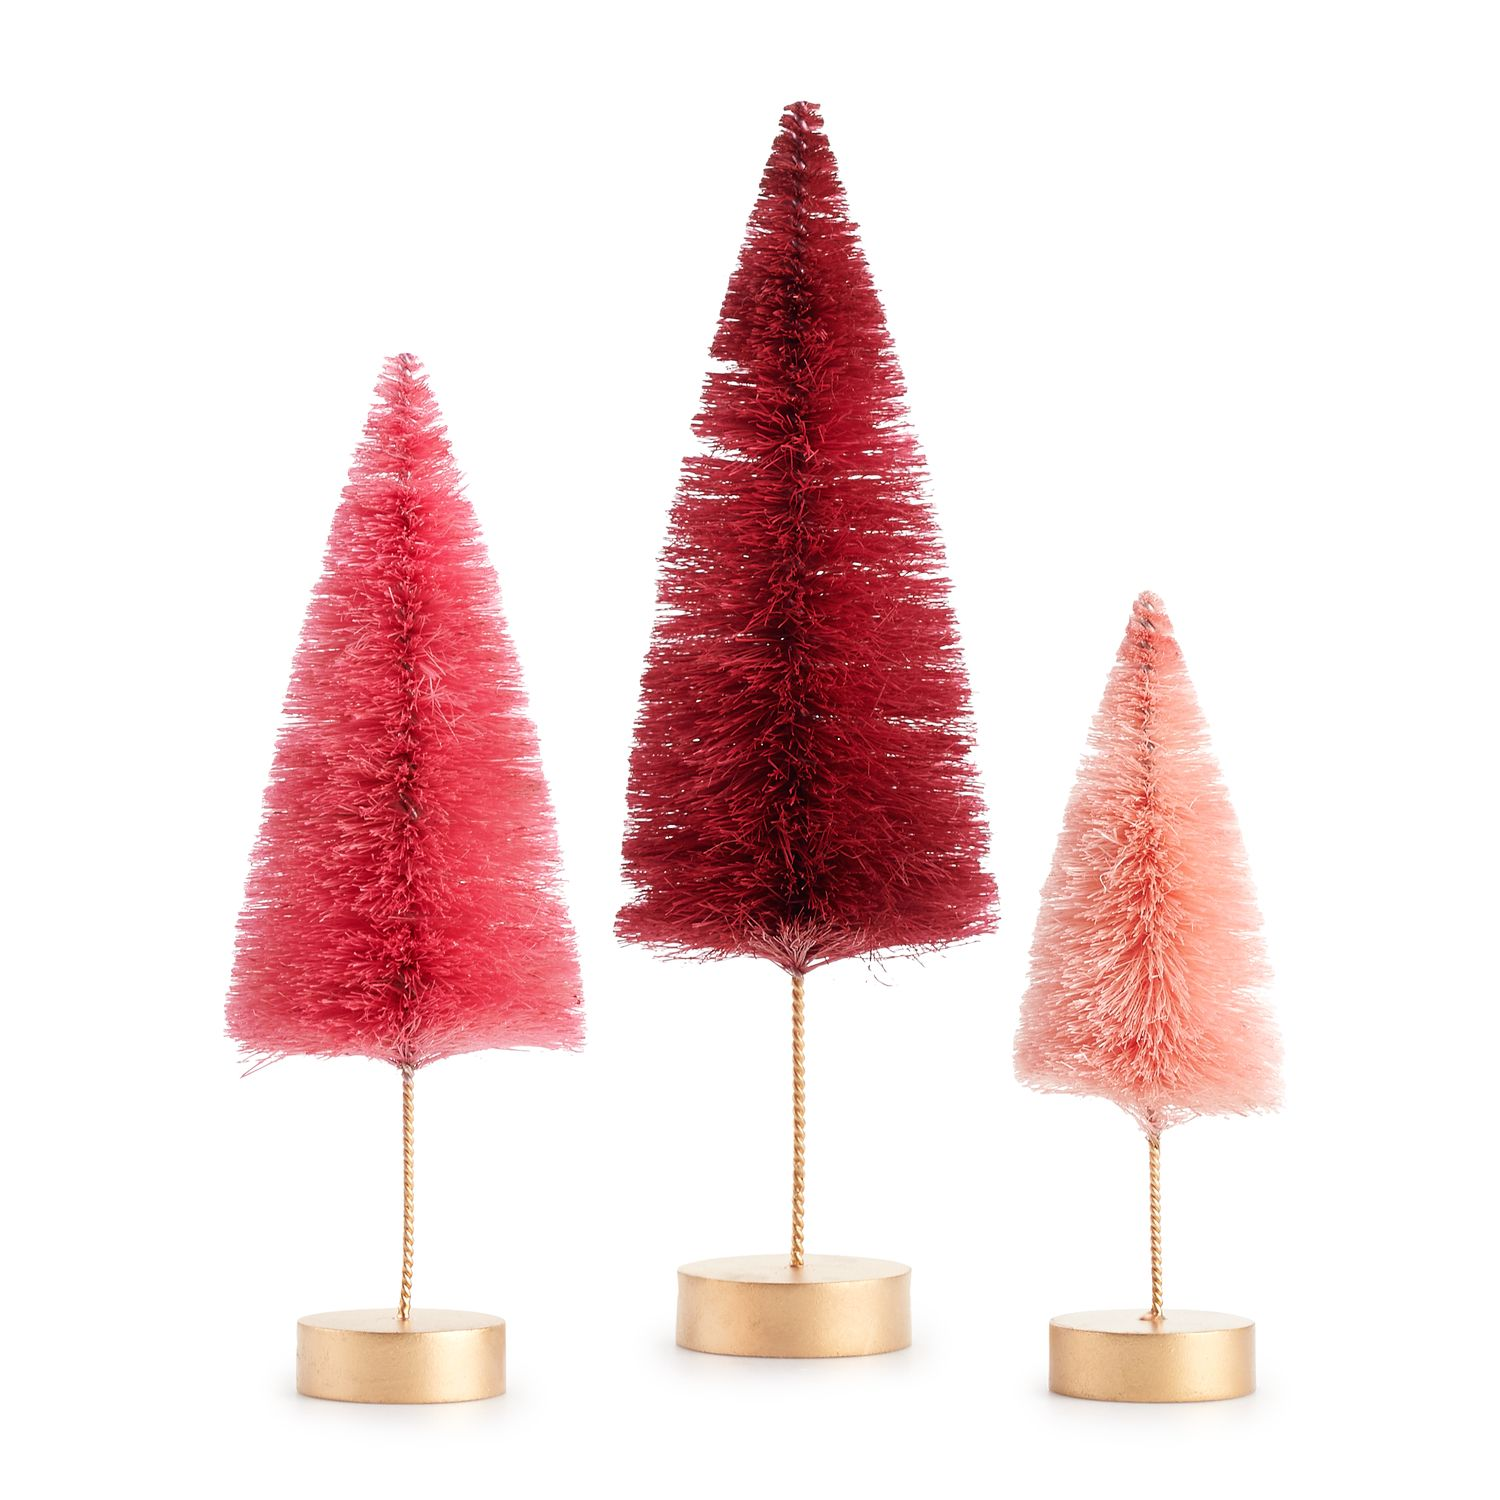 Pin By Linley Noel On Holly Jolly Christmas Bottle Brush Trees Bottle Brush Bottle Brush Christmas Trees